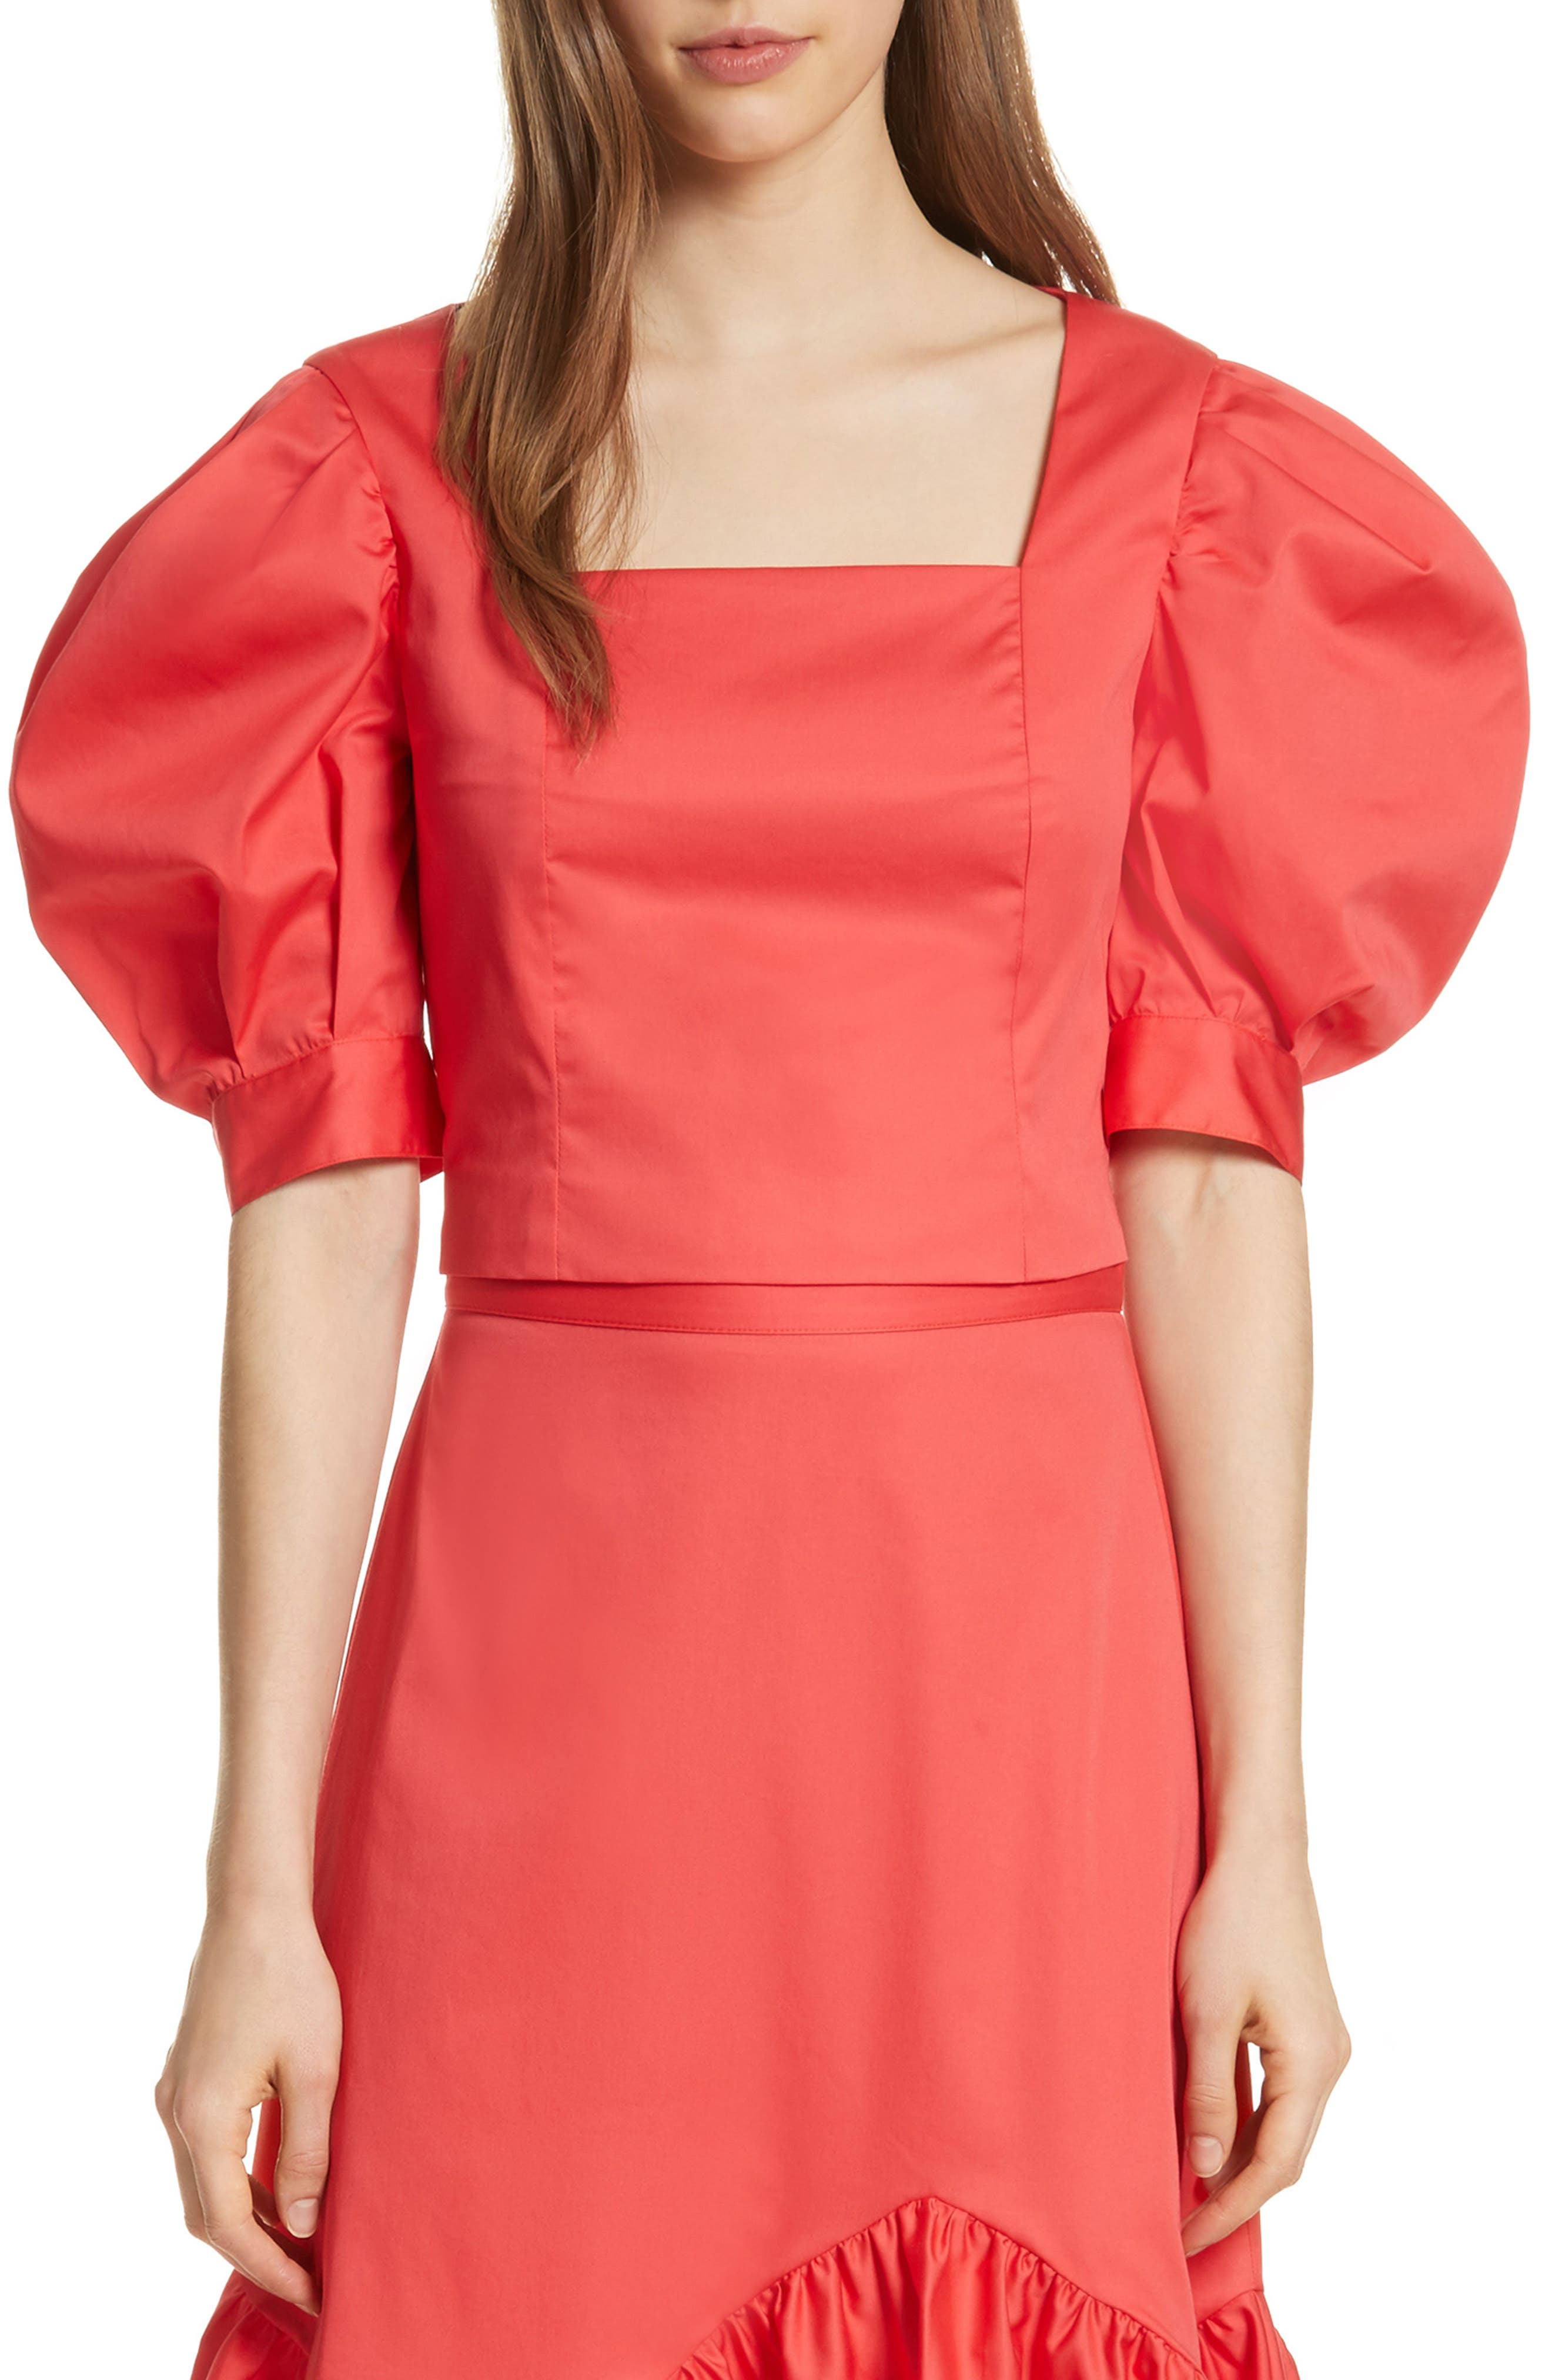 Prose & Poetry Claudia Puff Sleeve Top,                         Main,                         color, 621